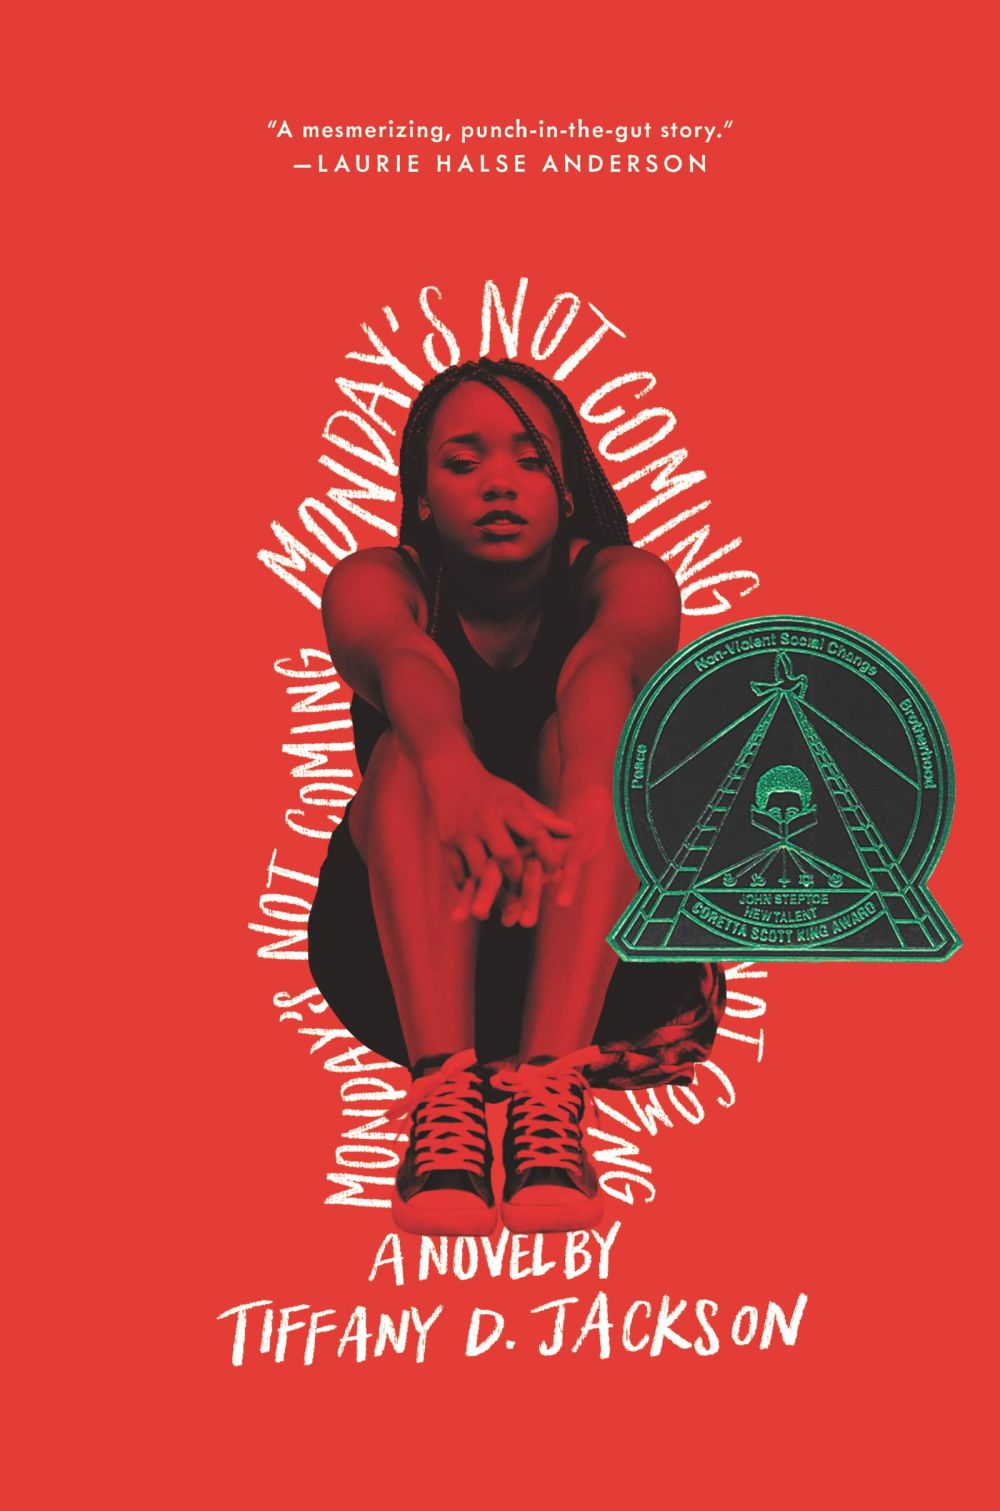 Mother-daughter relationships in YA: Monday's Not Coming by Tiffany D. Jackson